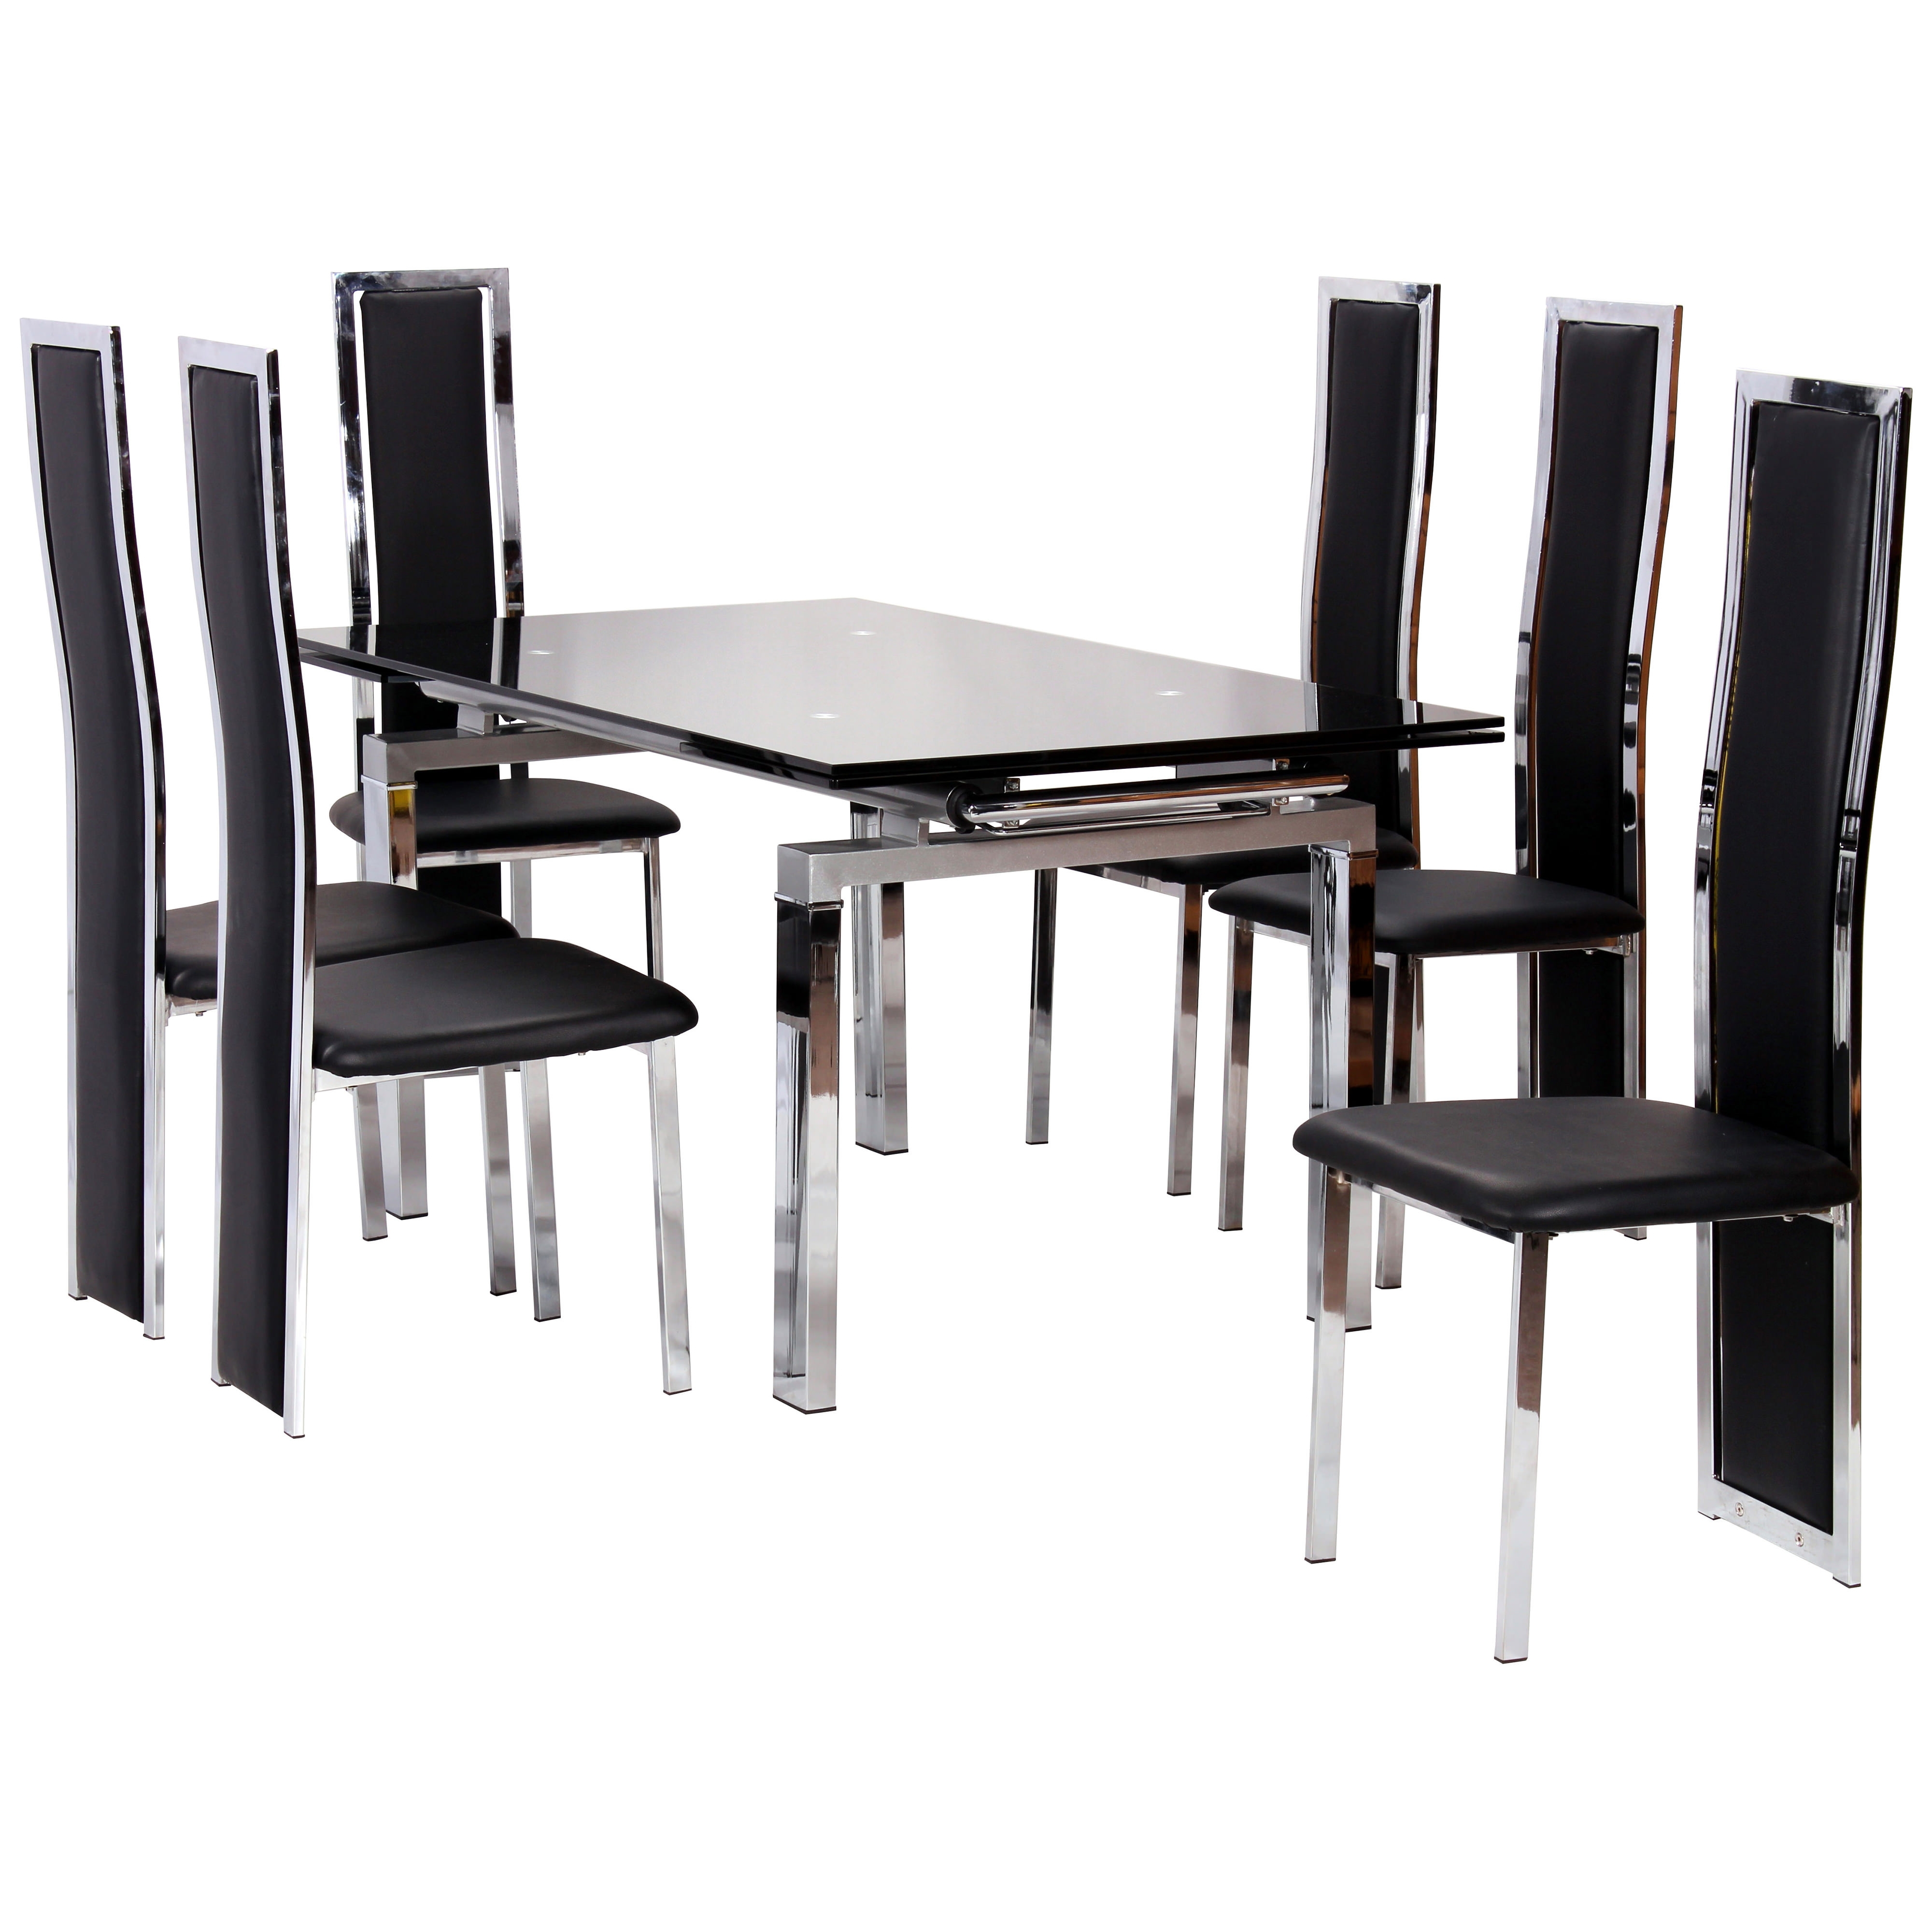 Chrome & Glass Extending Dining Table And Chair Set With 6 Seats Pertaining To Most Recently Released Glass Extendable Dining Tables And 6 Chairs (View 2 of 25)